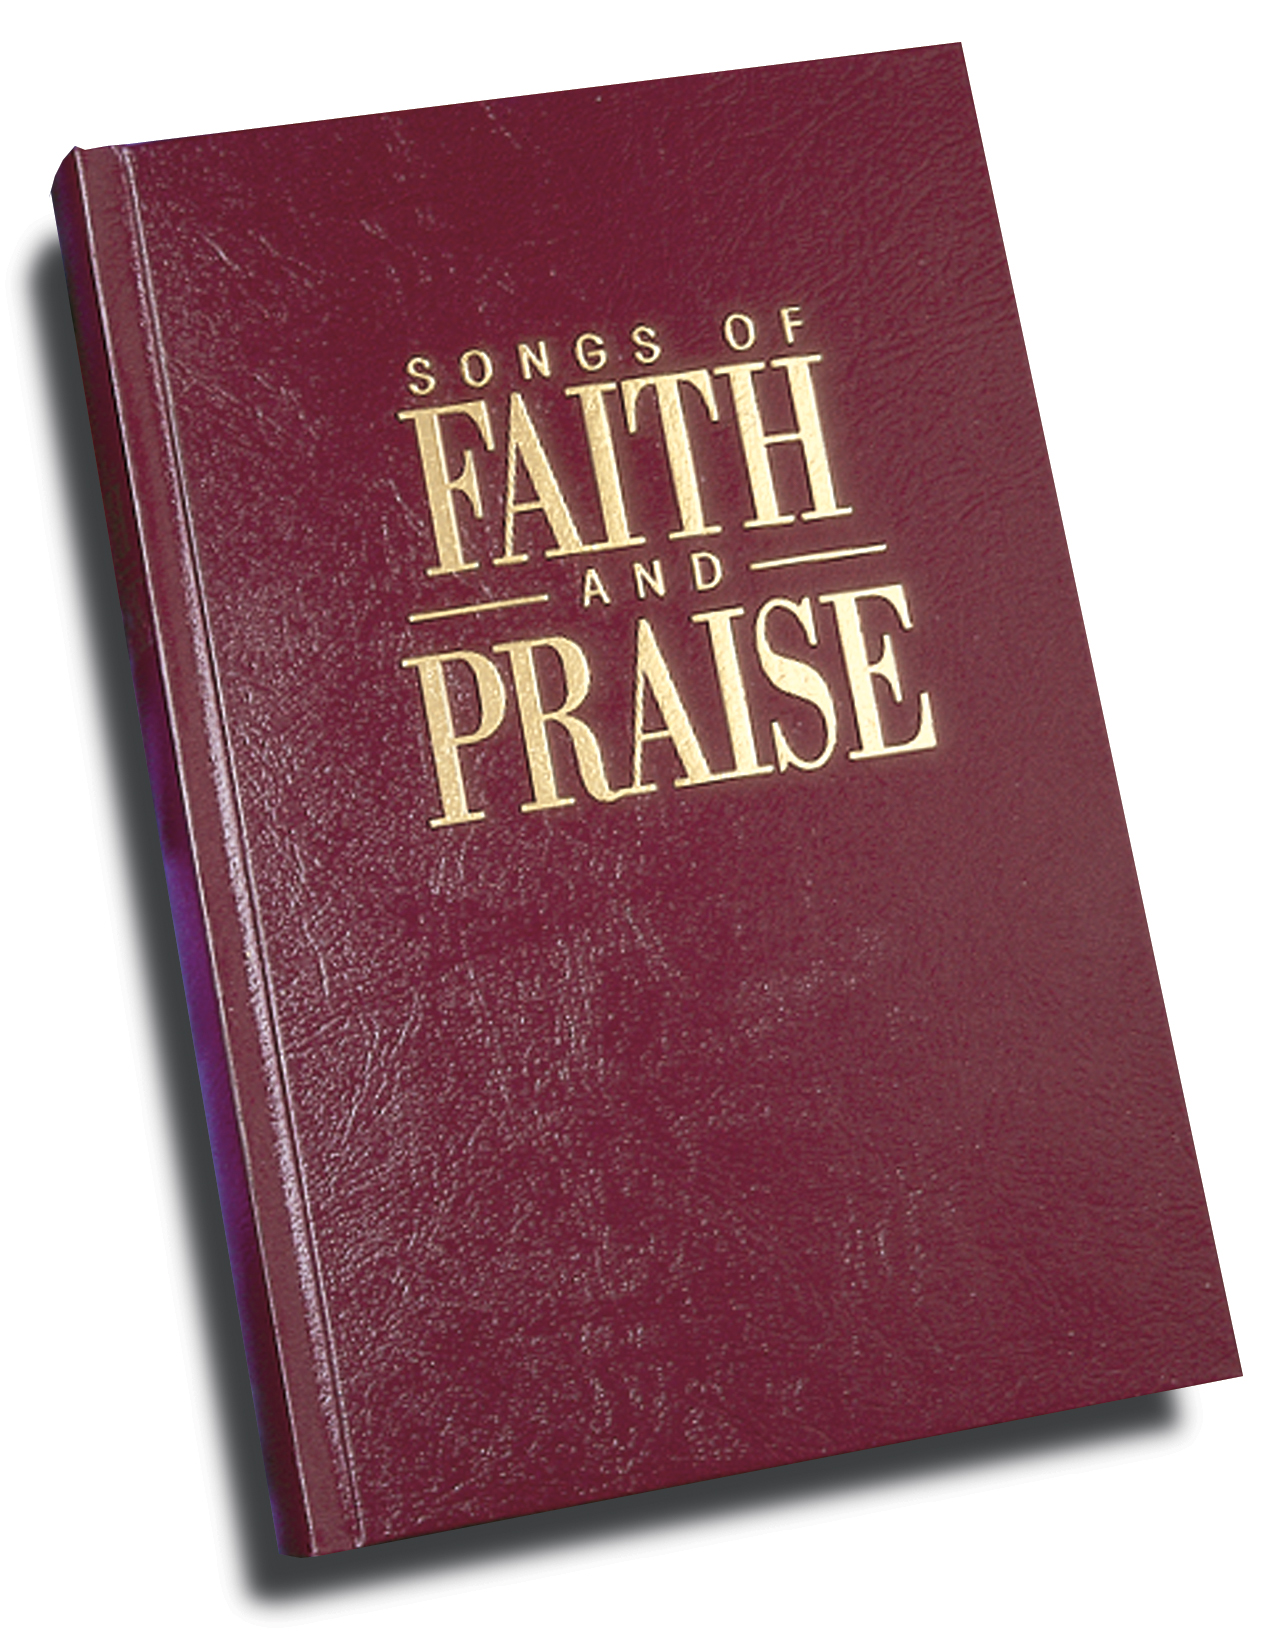 Hymns of joy and praise